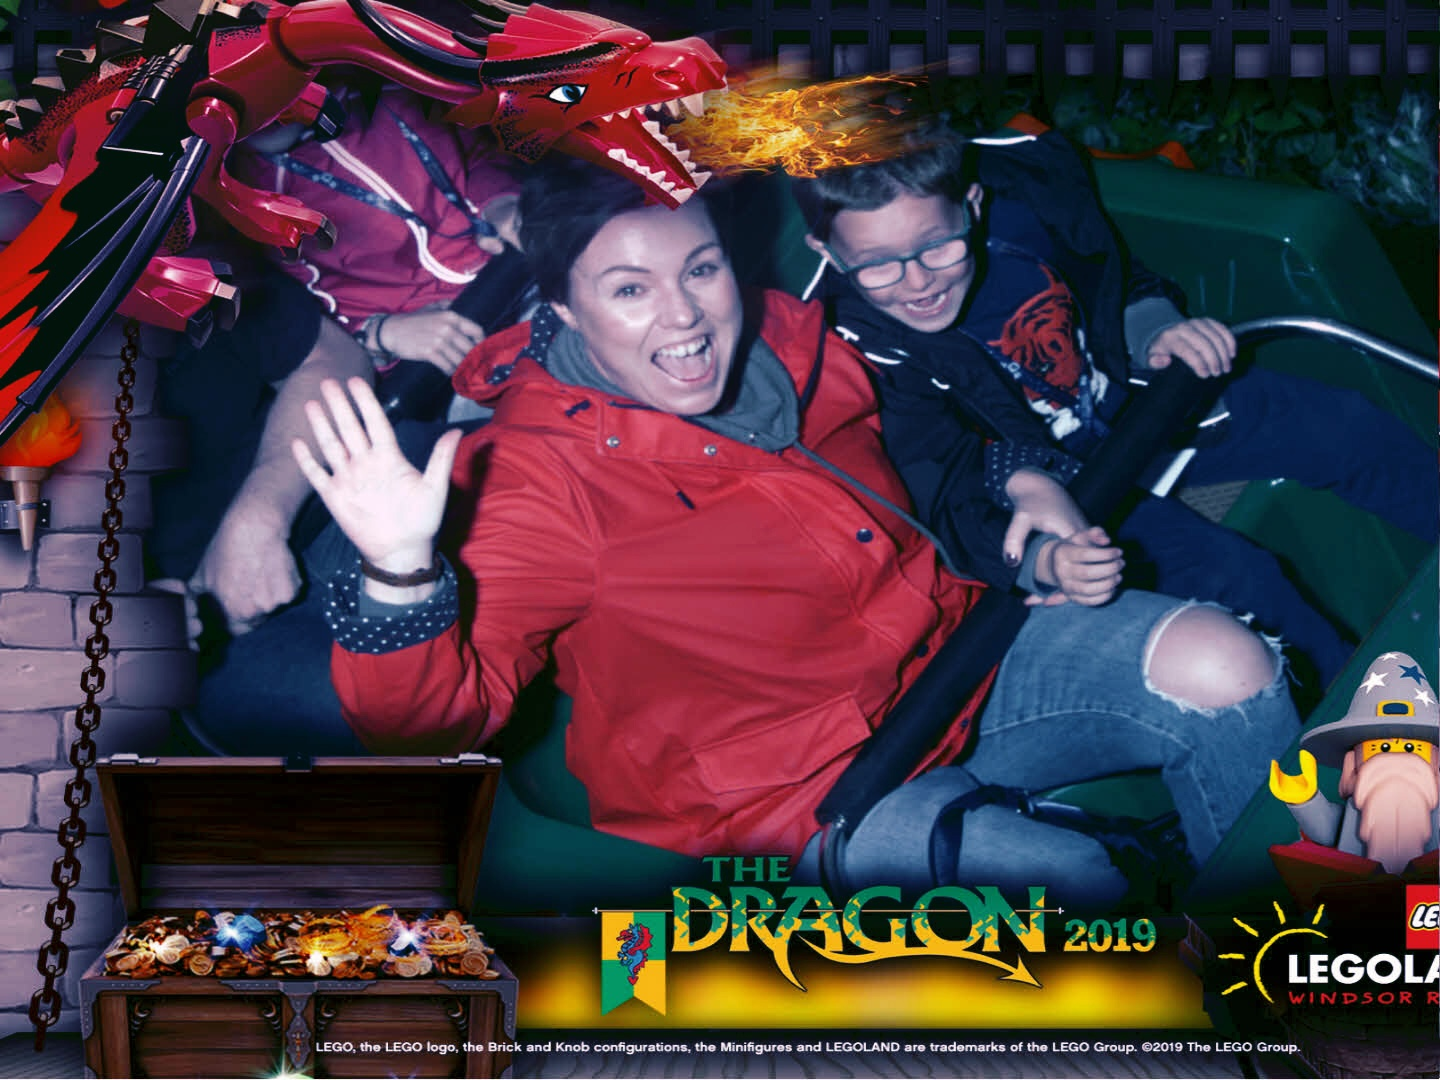 Riding the Dragon, our favourite rollercoaster at Legoland.